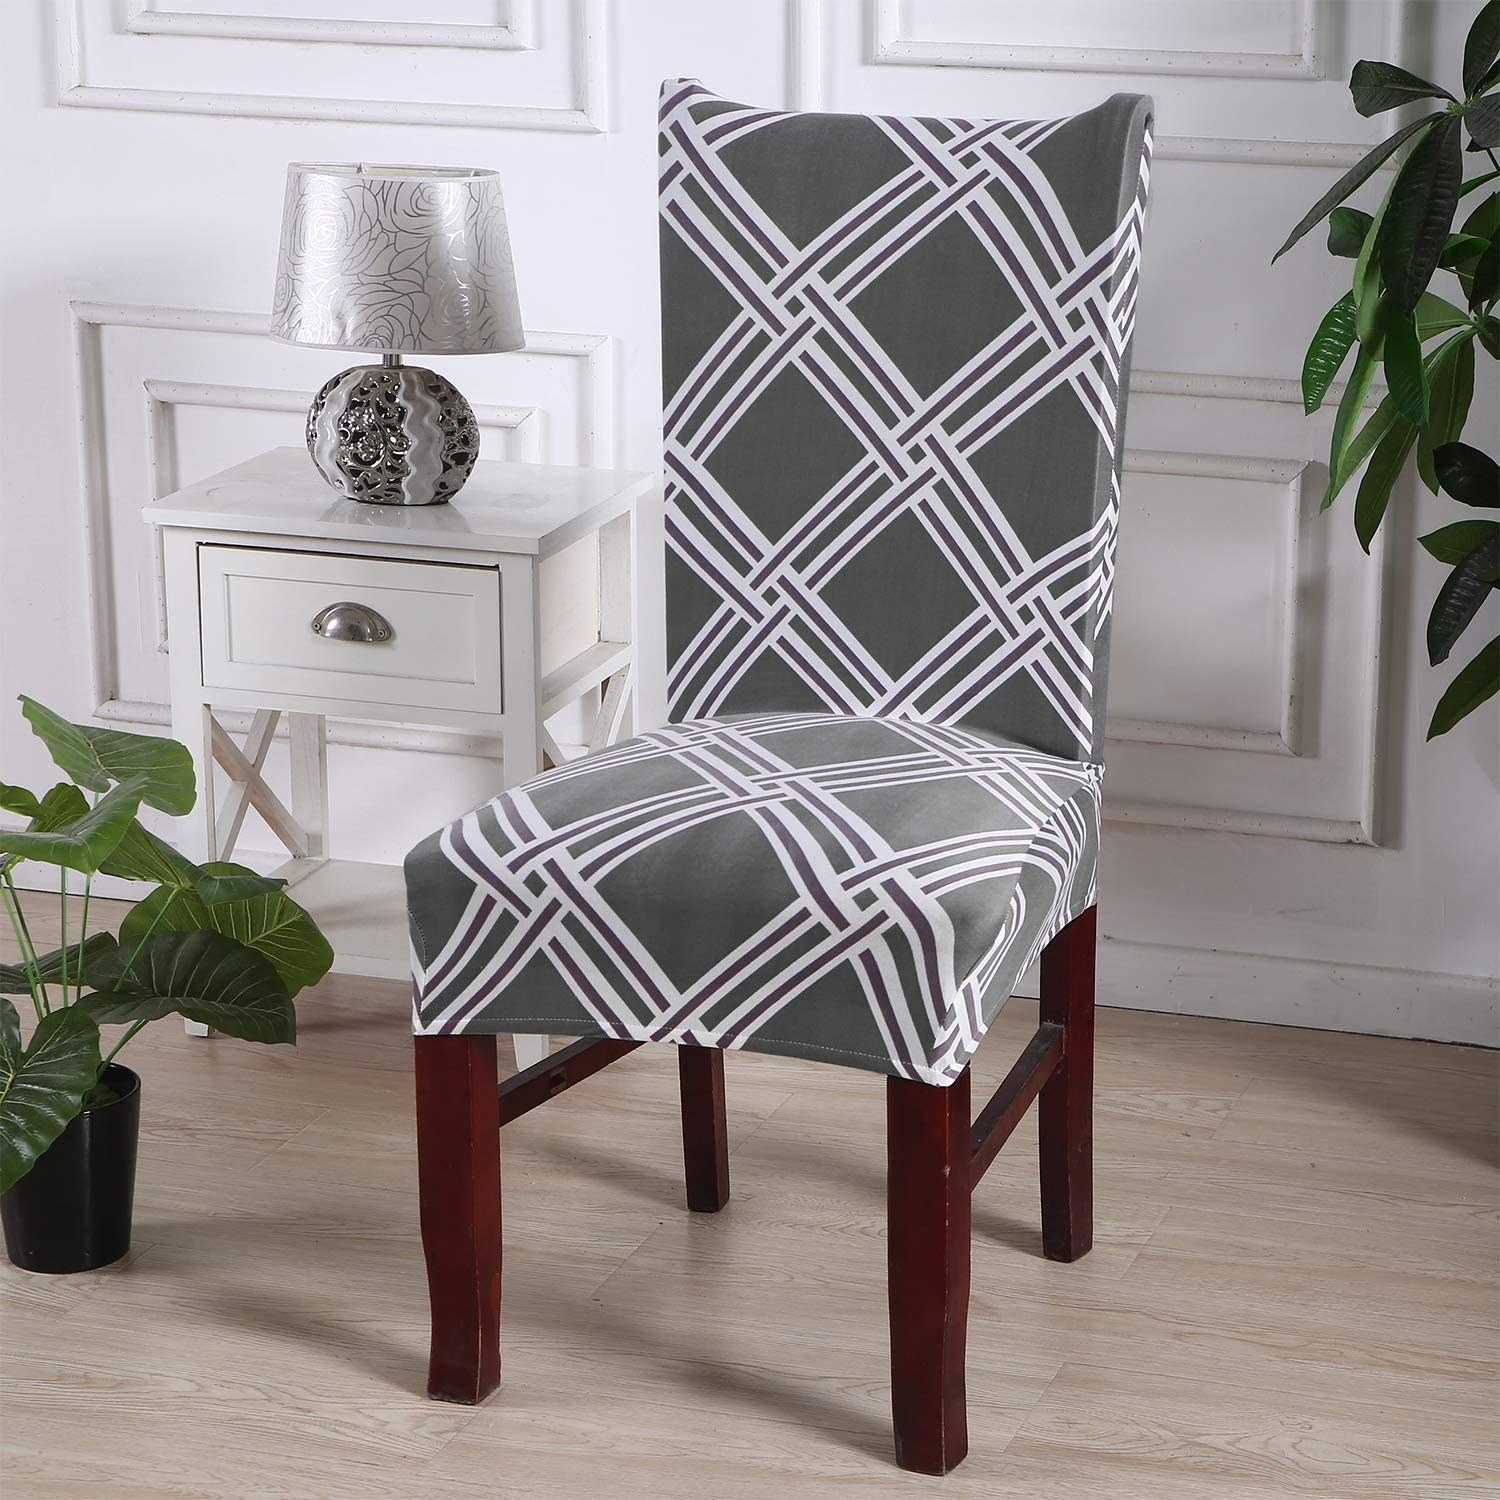 A chair with a patterned slipcover over it